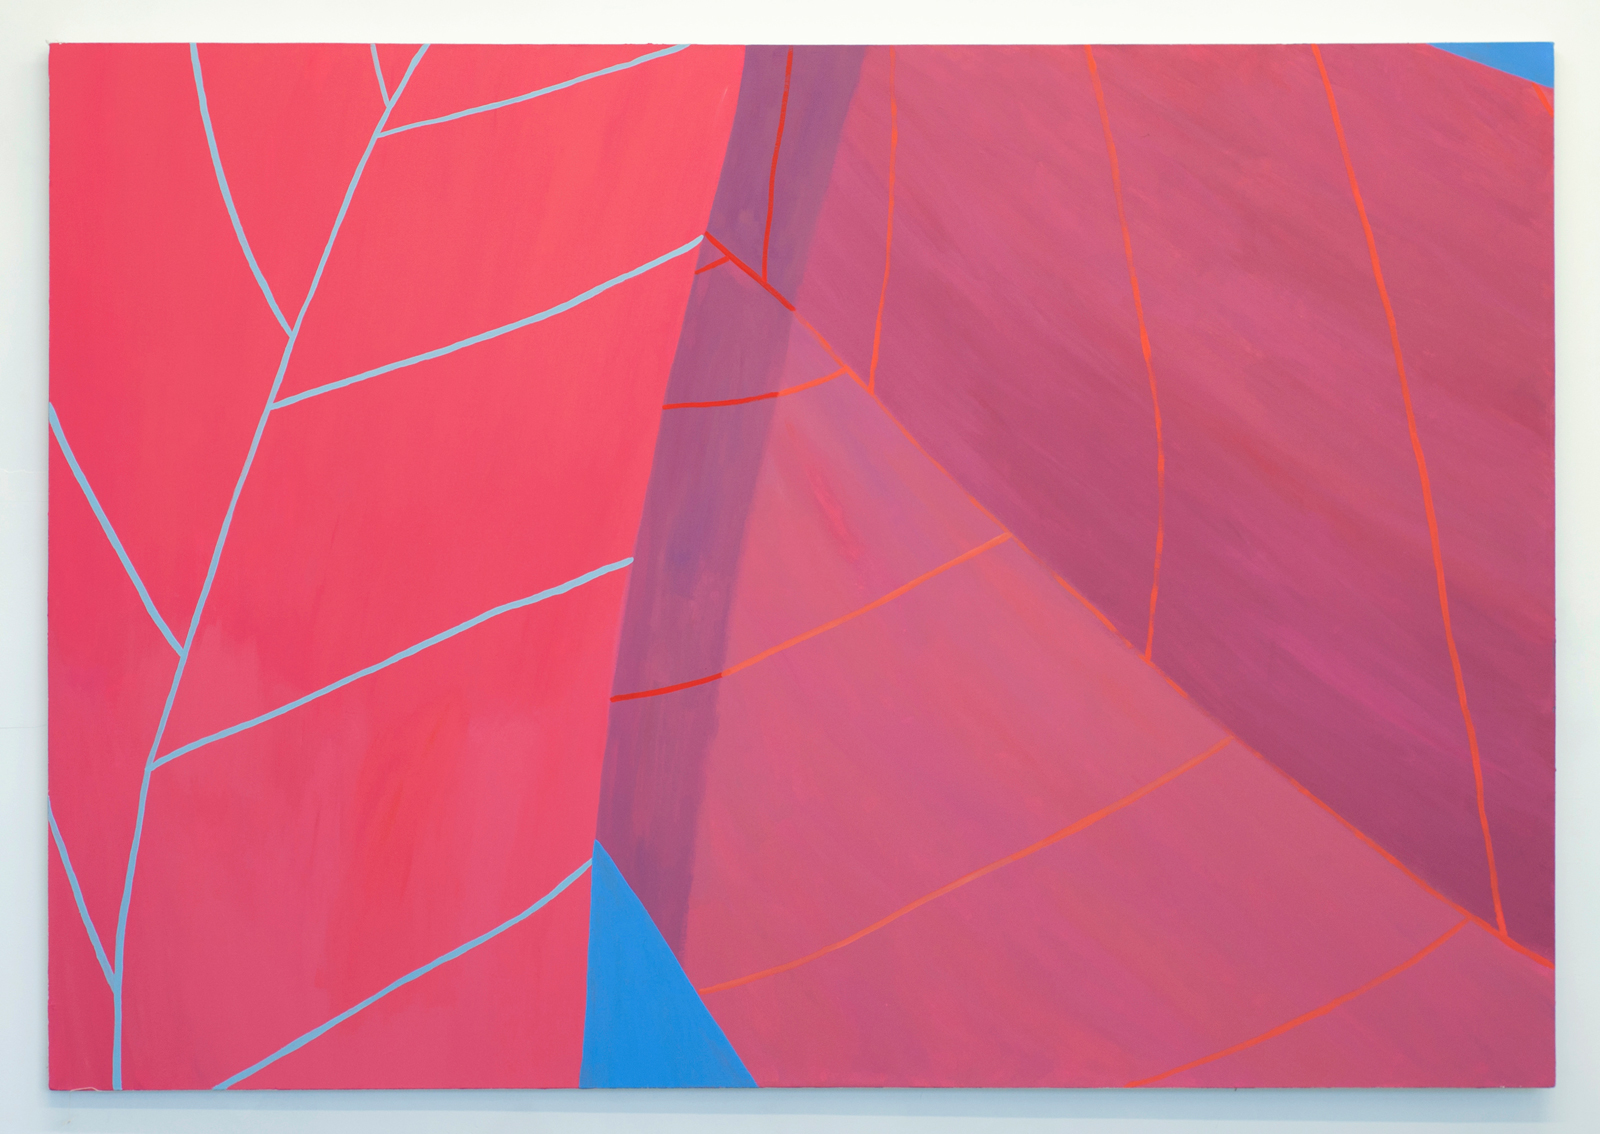 Corydon Cowansage, Leaves #8, 2015, 50 x 72 inches,  acrylic on canvas